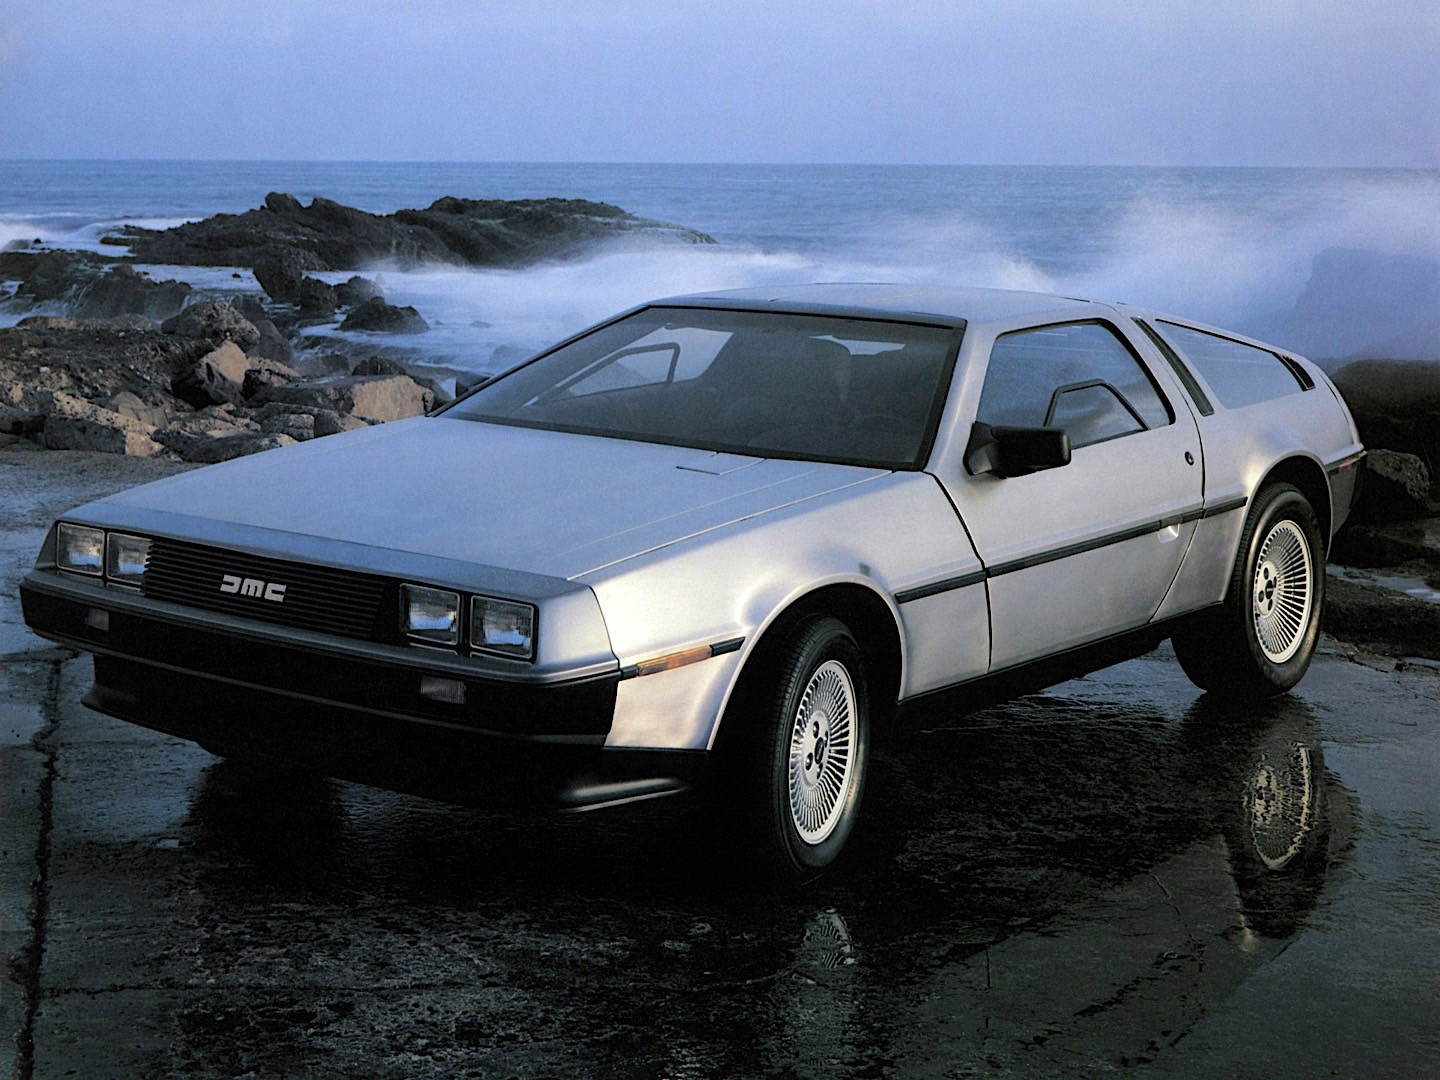 Delorean Dmc-12 Specs  Photos - 1981, 1982, 1983 -9688